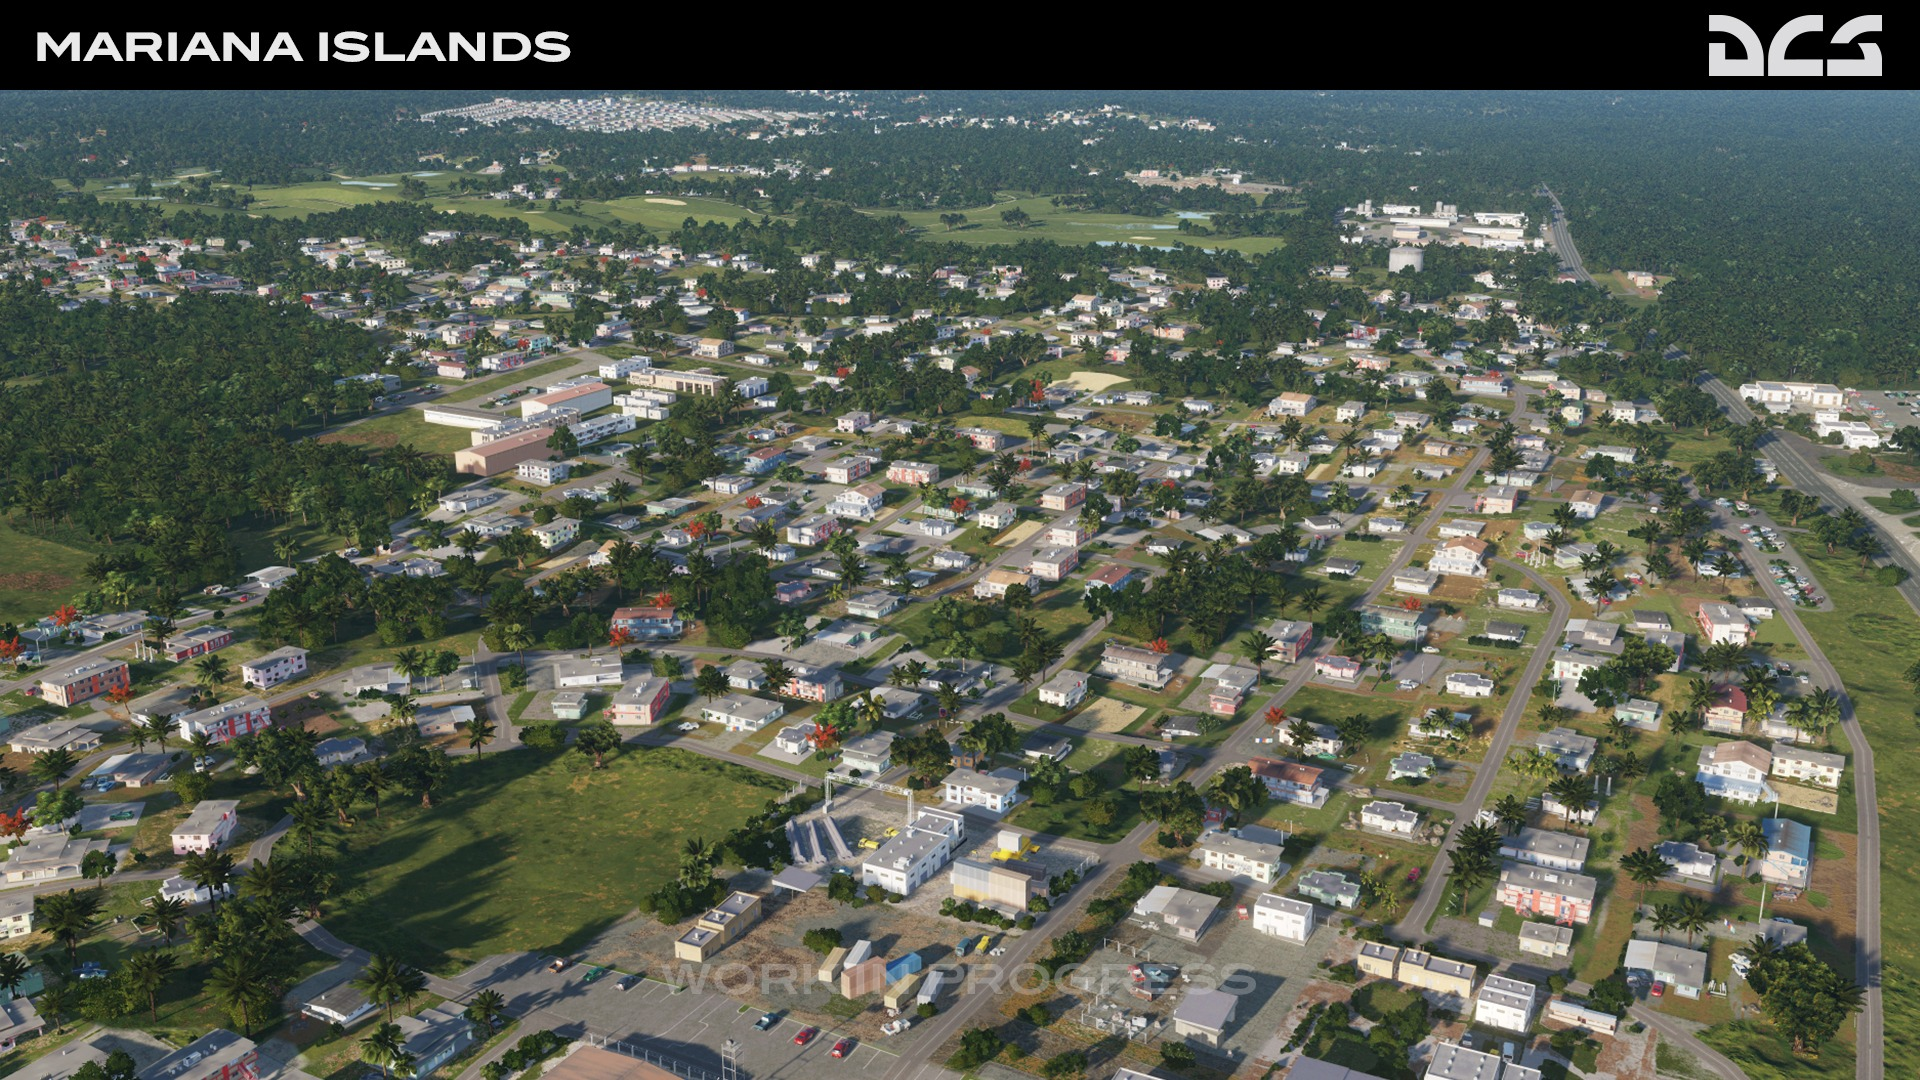 dcs-world-Mariana-islands-05 (1)